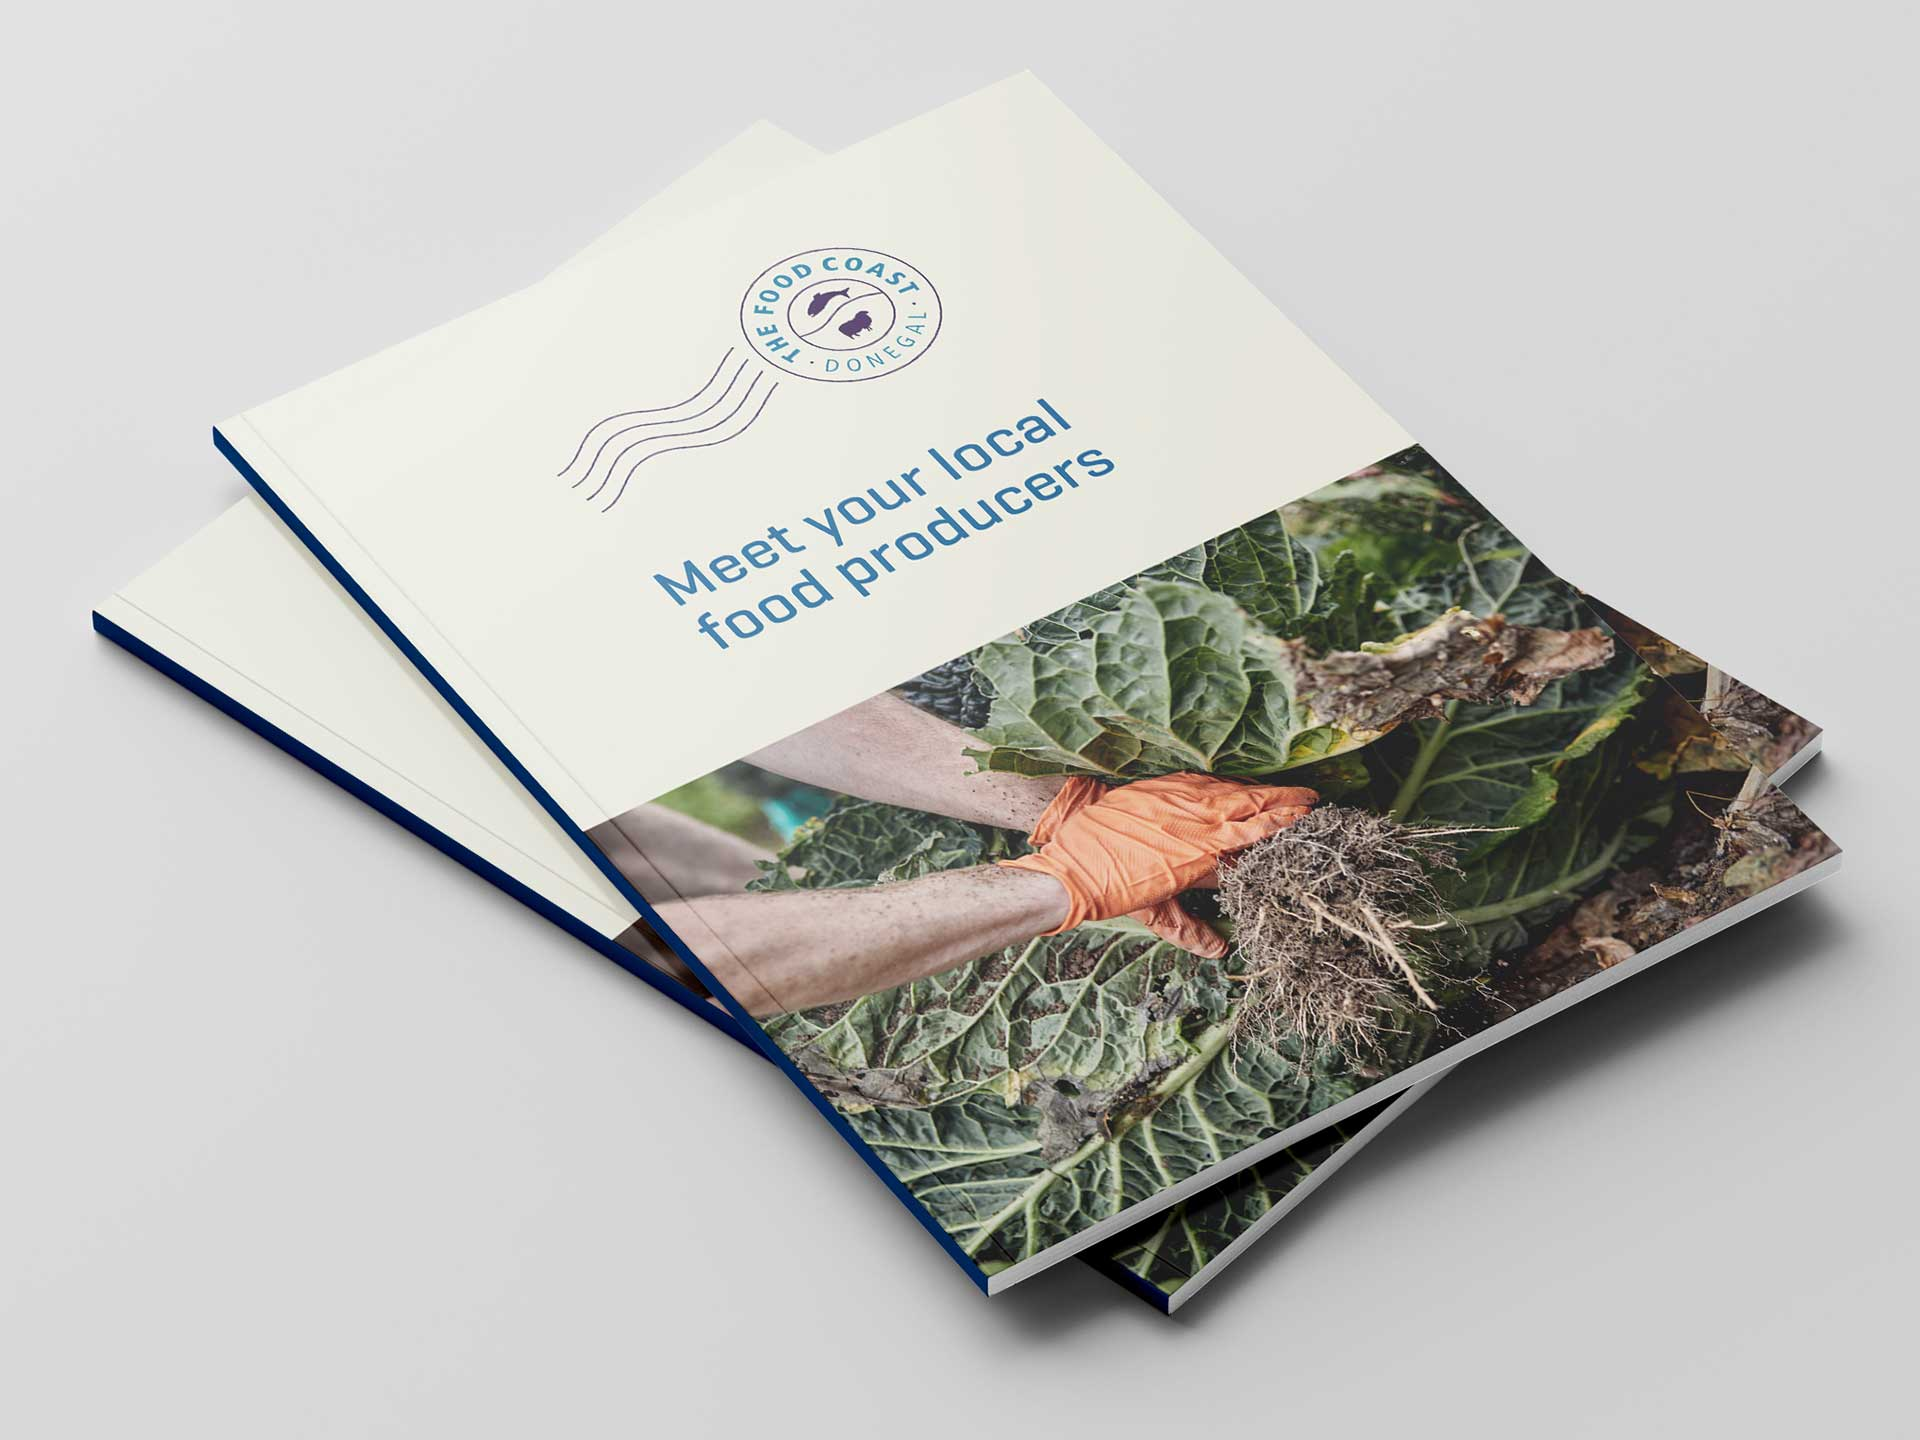 Donegal's Local Food Directory